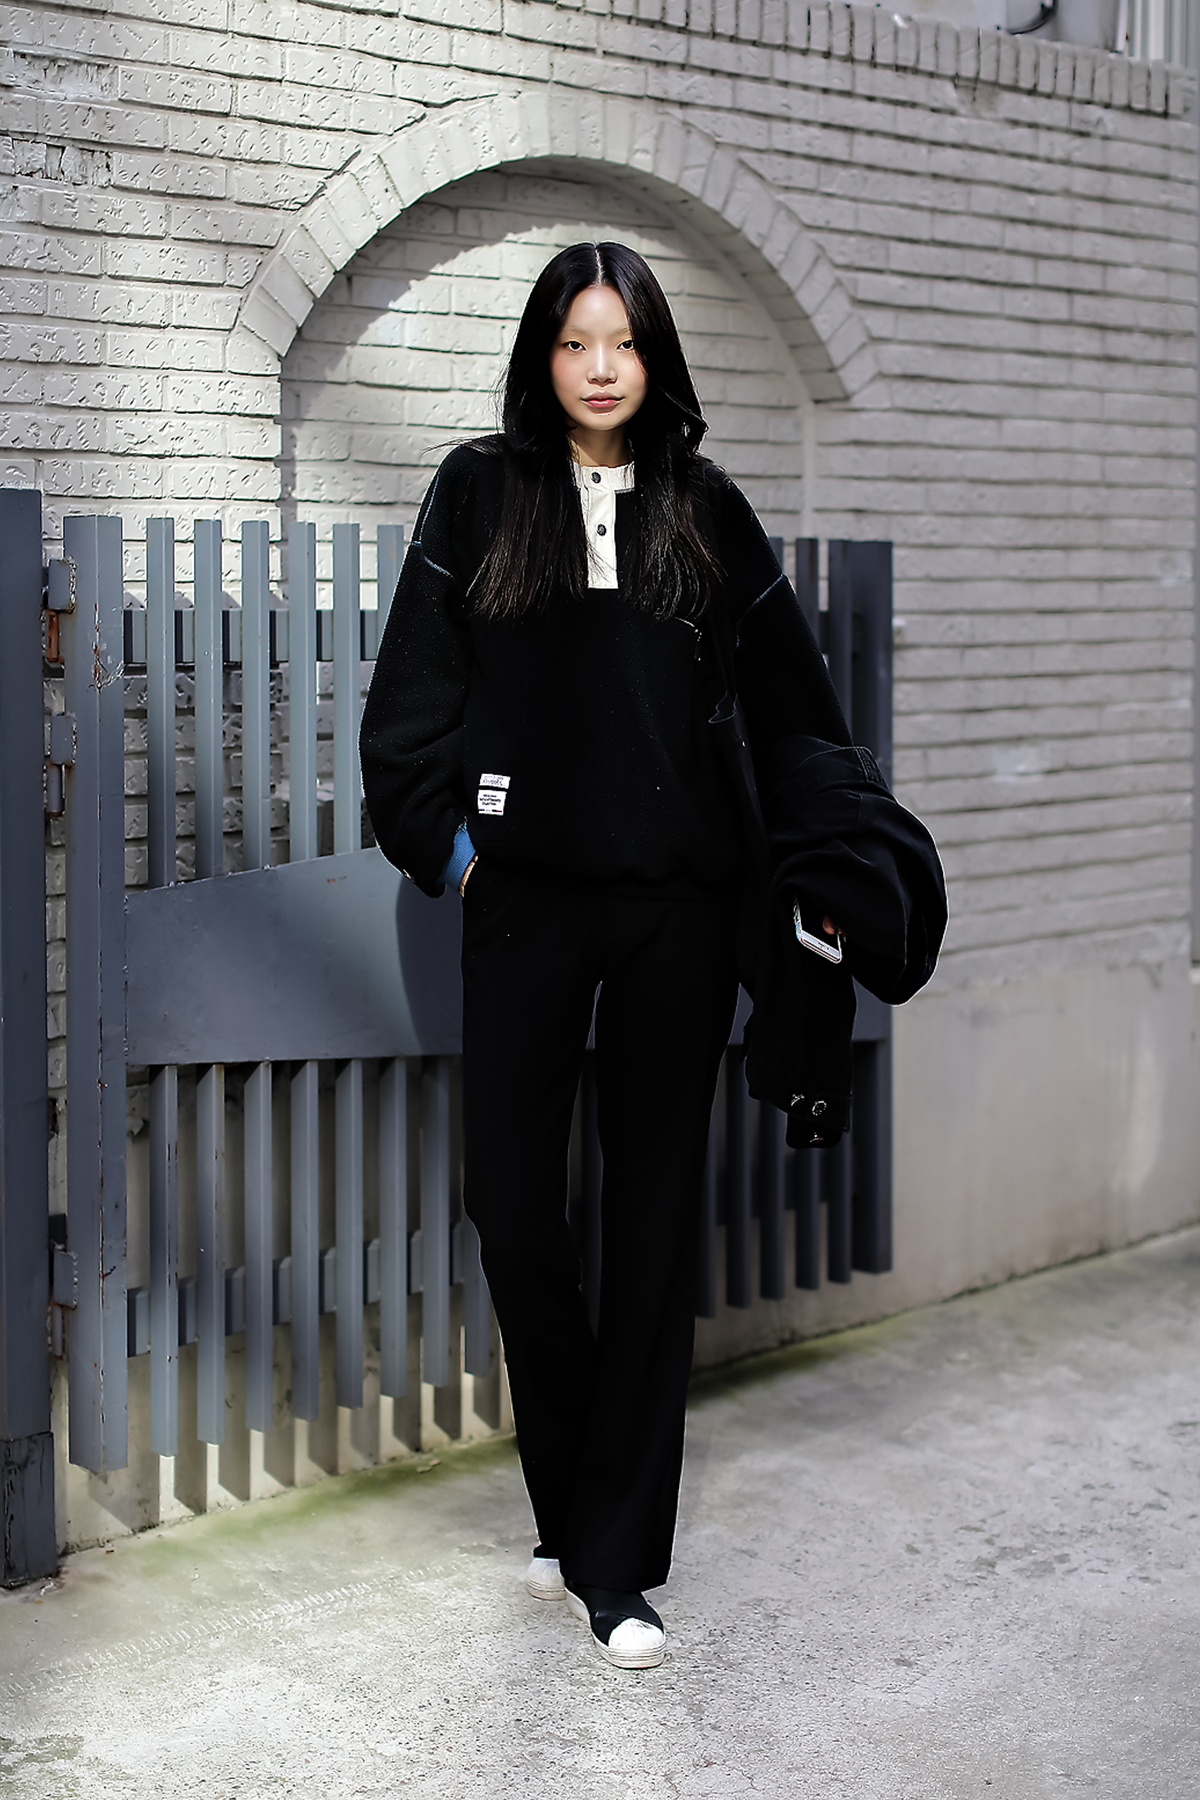 Women fall street style fourth week of october 2018 in seoul 13